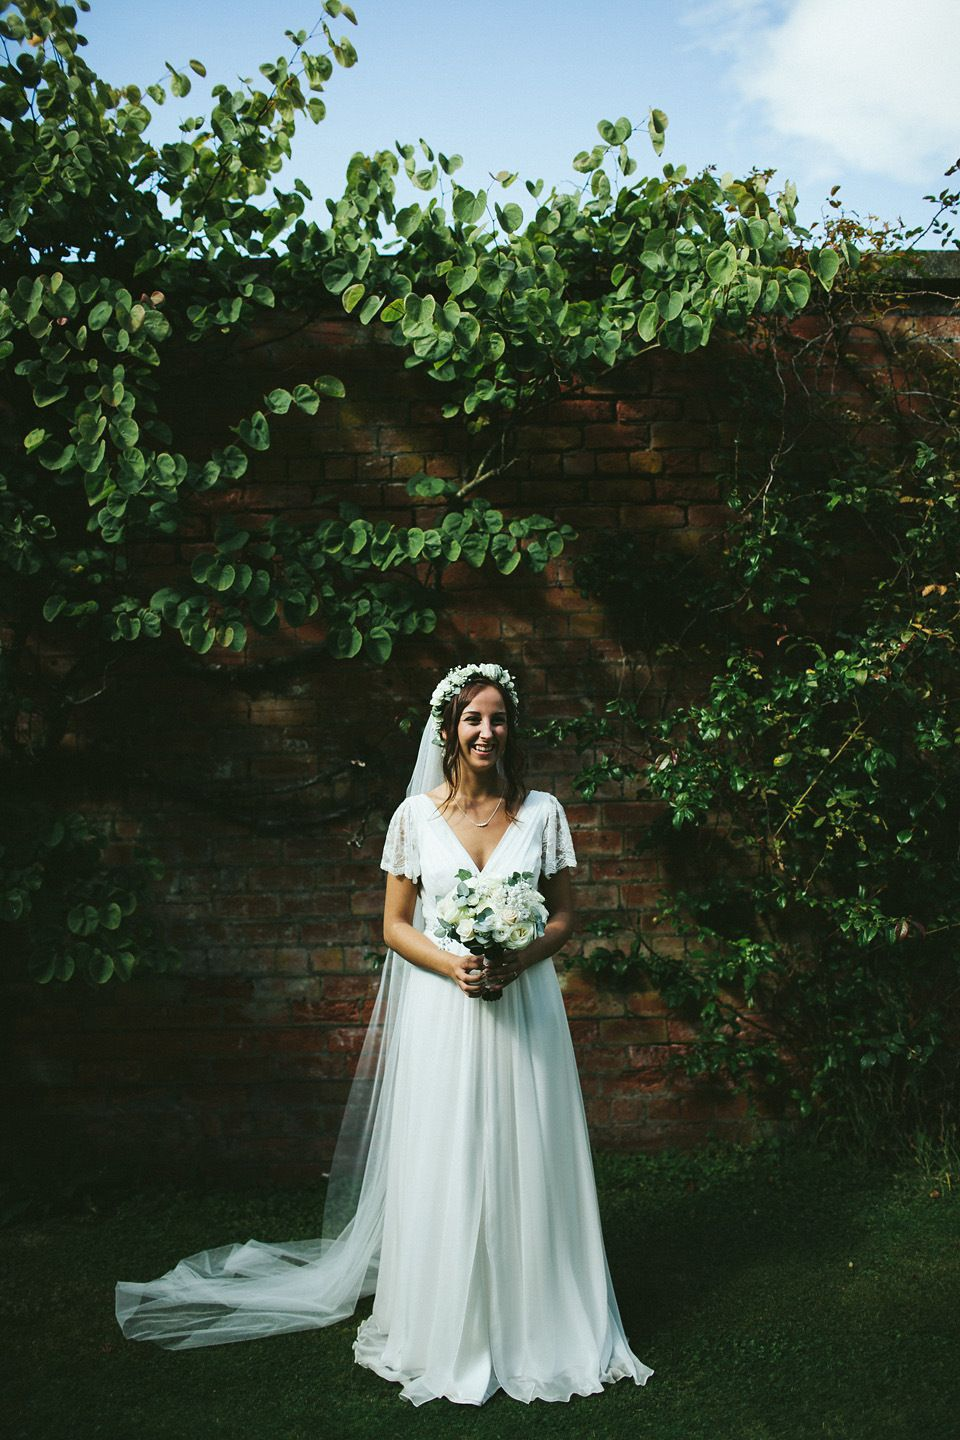 Wedding dresses bolton  Kate Beaumont Lace for a Colourful Relaxed and Lovely Family